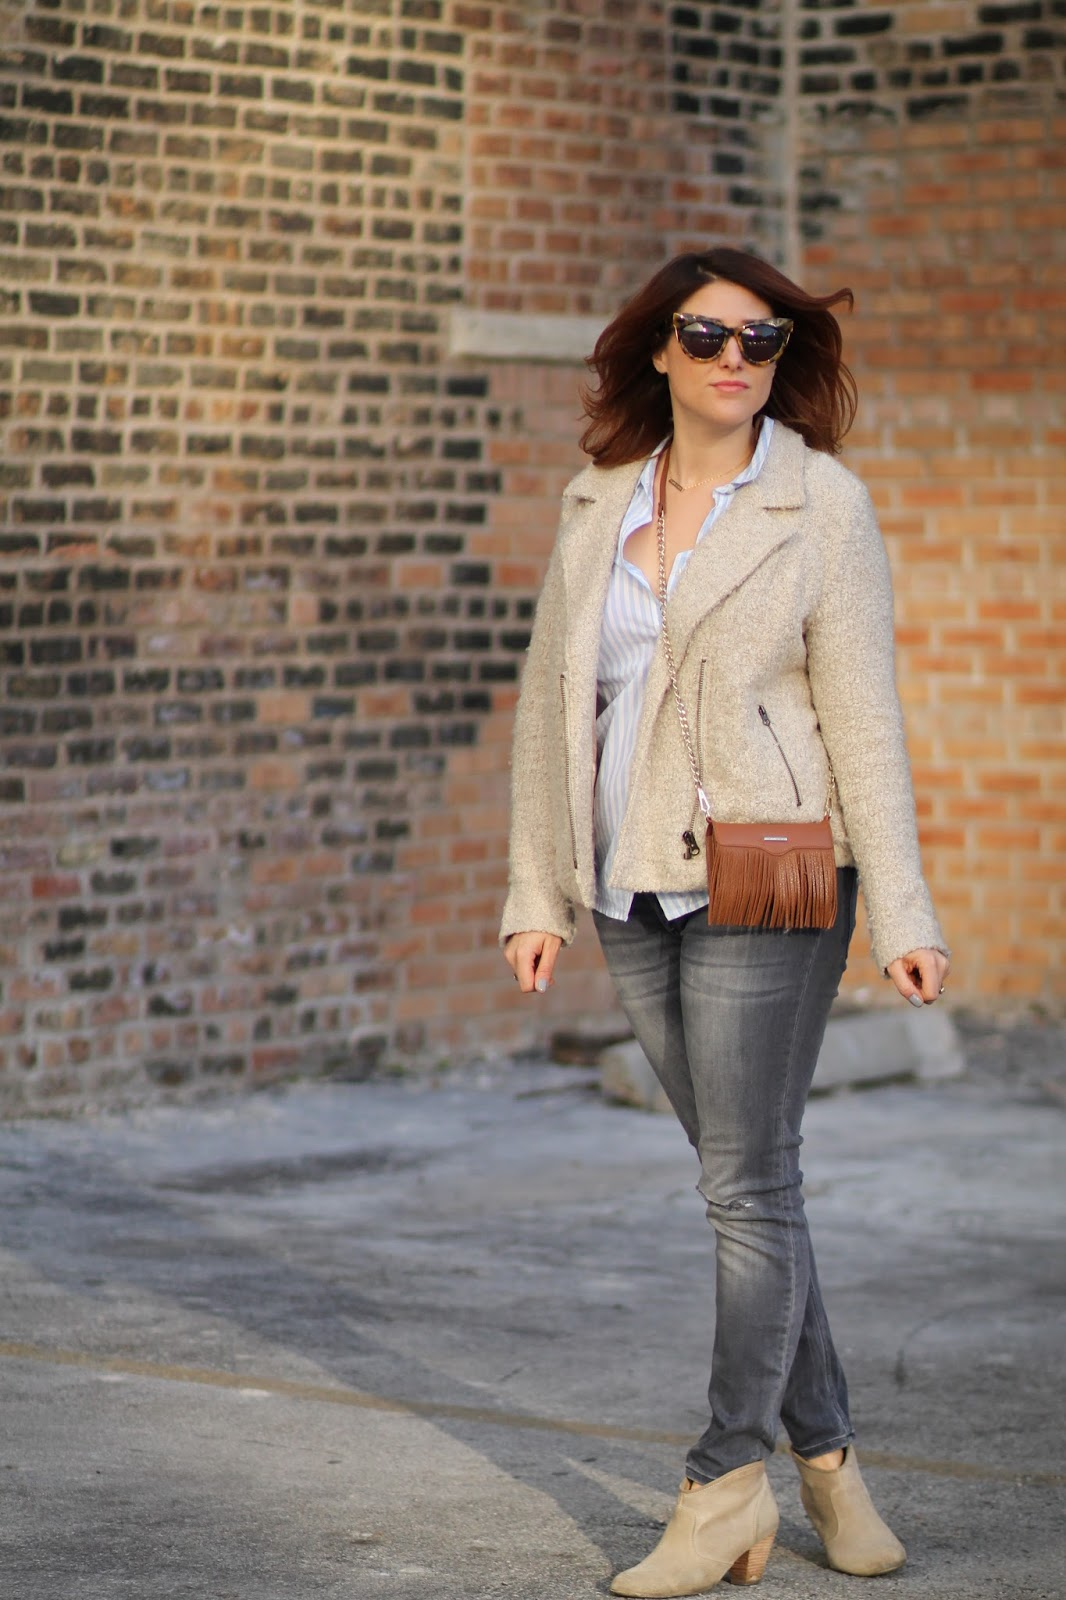 casual outfit idea, brunch look, weekend outfit, button down shirt, moto jacket, fringe bag purse, suede booties and distressed ripped gray jeans, Rebecca Minkoff fringe phone case